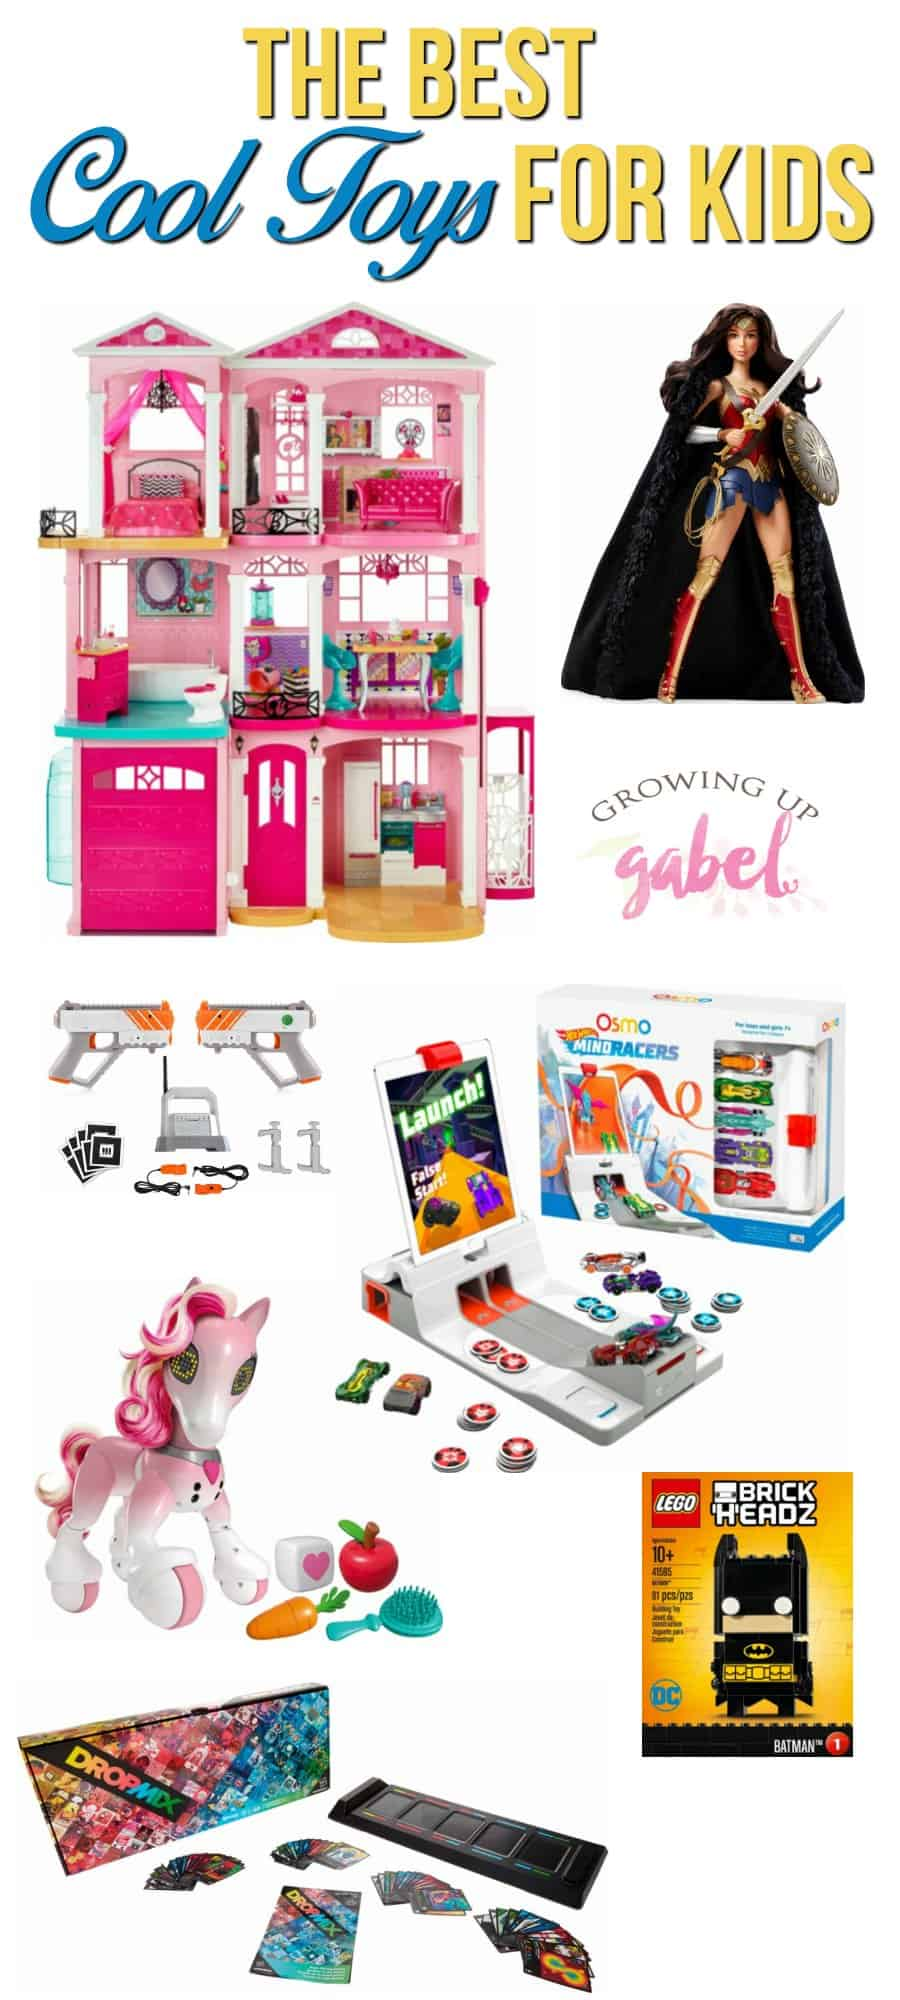 Click now to check out THE BEST cool toys found at Best Buy! From stuffed animals to the neatest tech toys, find them all! #ad